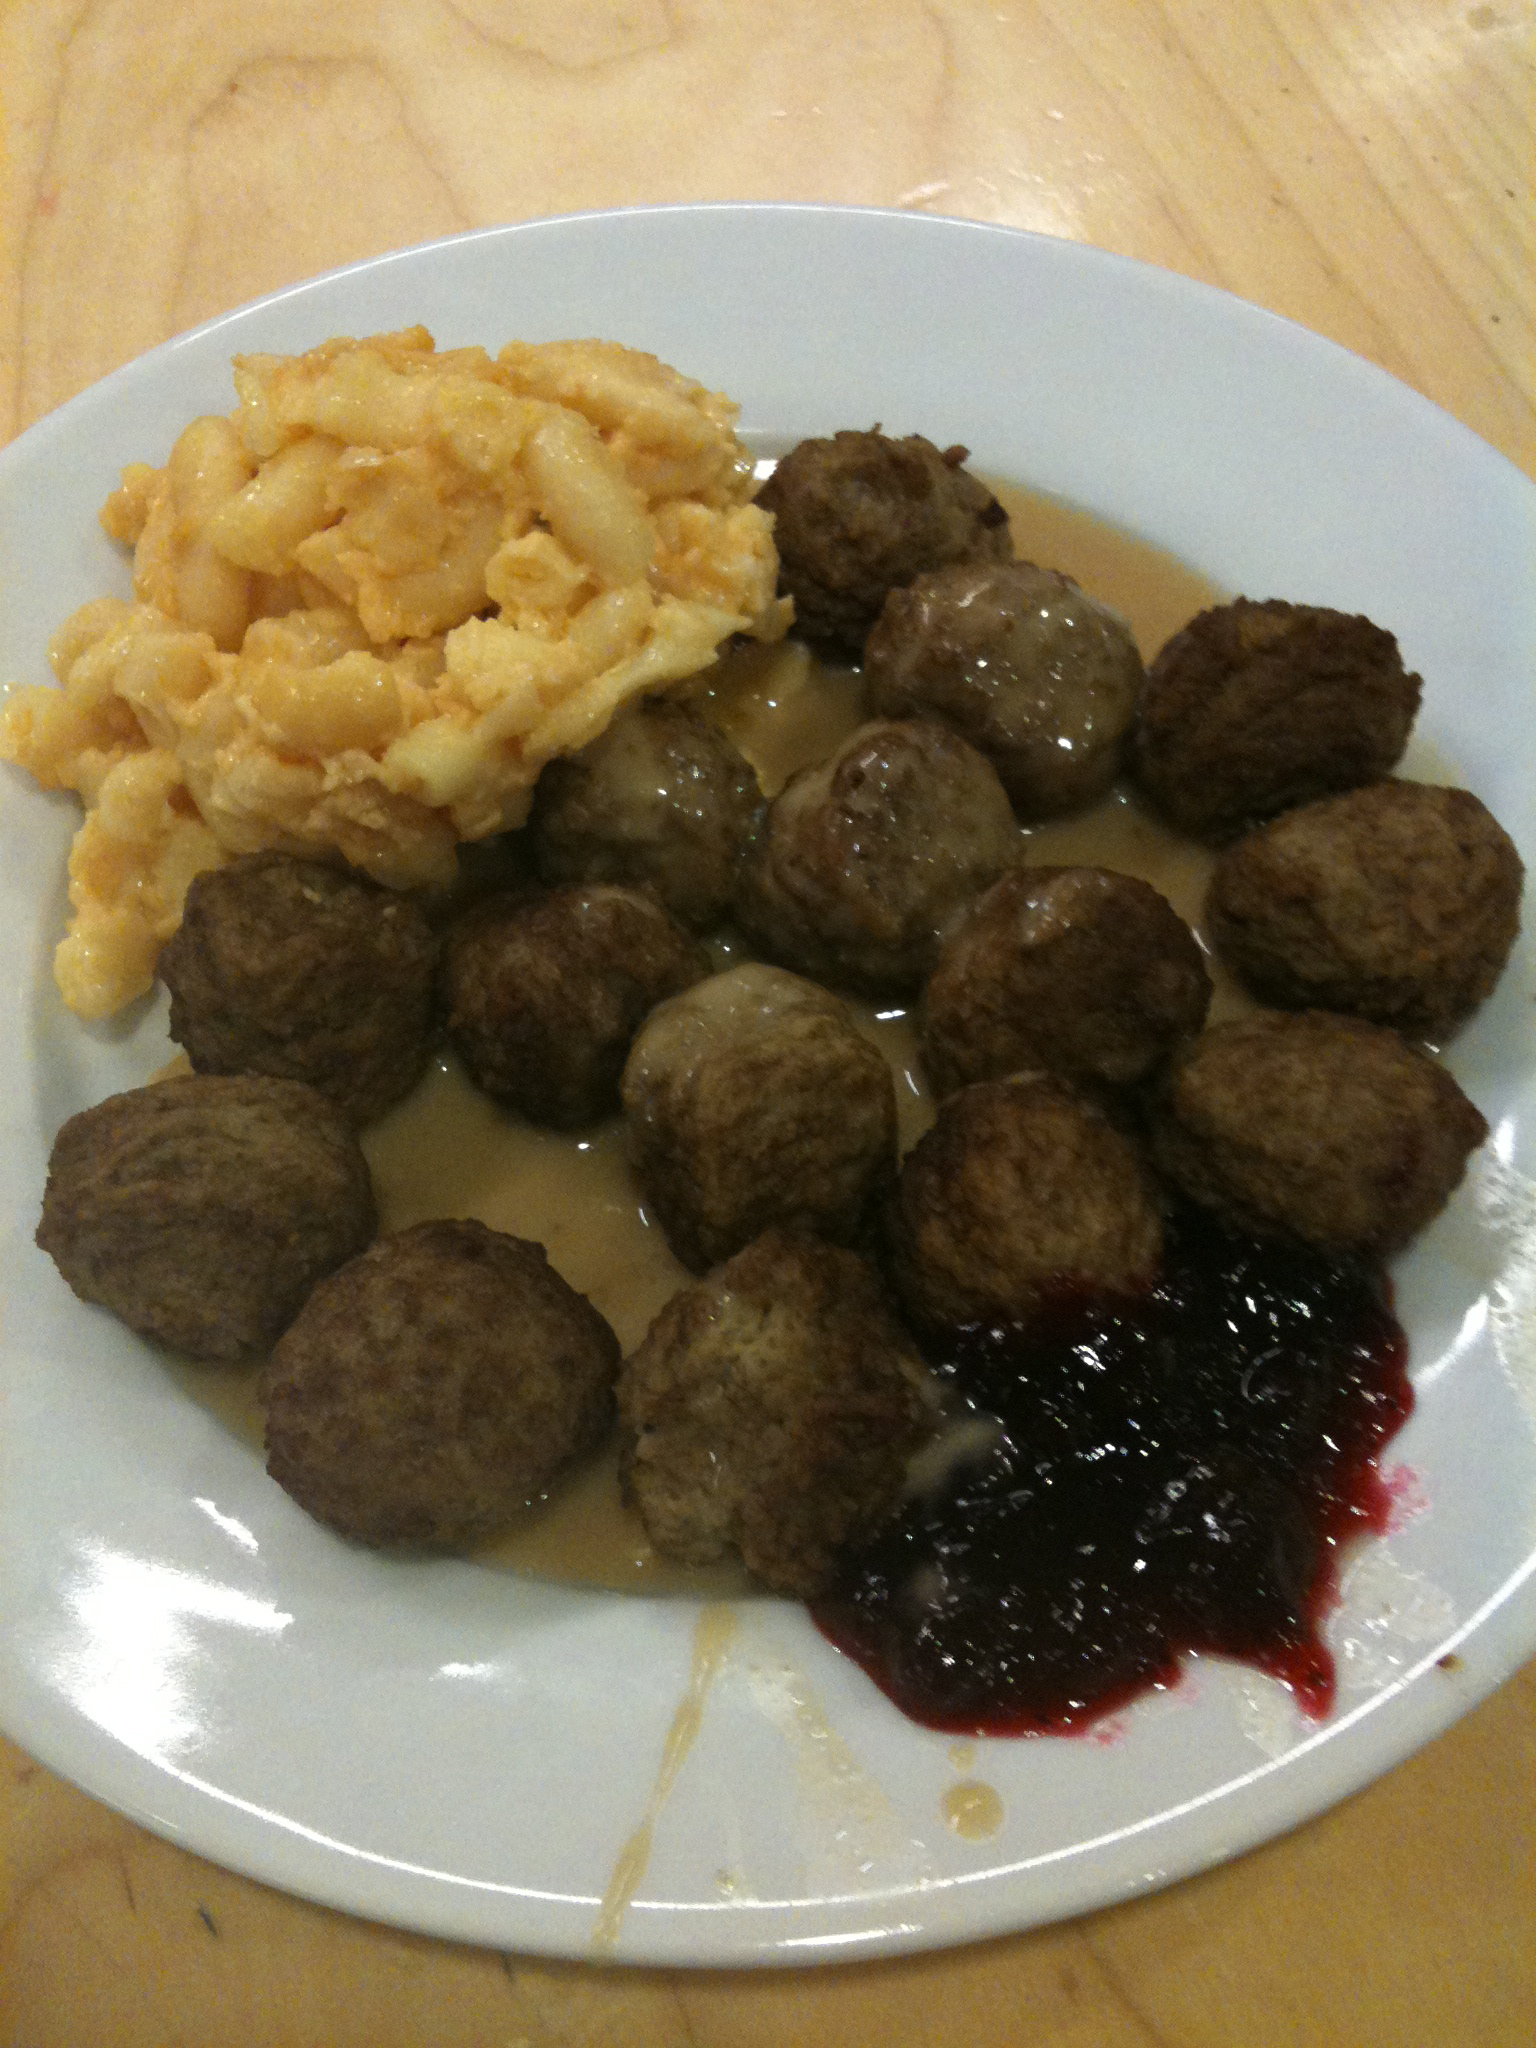 Ikea - Stoughton, MA :: some Ikea meat-balls w/ gravy and I paid .50 extra for the mac and cheese! I went on a tuesday and I should have gone tuesday after 4pm... the meat-balls are $2.49 after 4pm on tuesdays...that store kind of sucks if you ever want to leave... I had to bust through an employ's only door to exit the building!